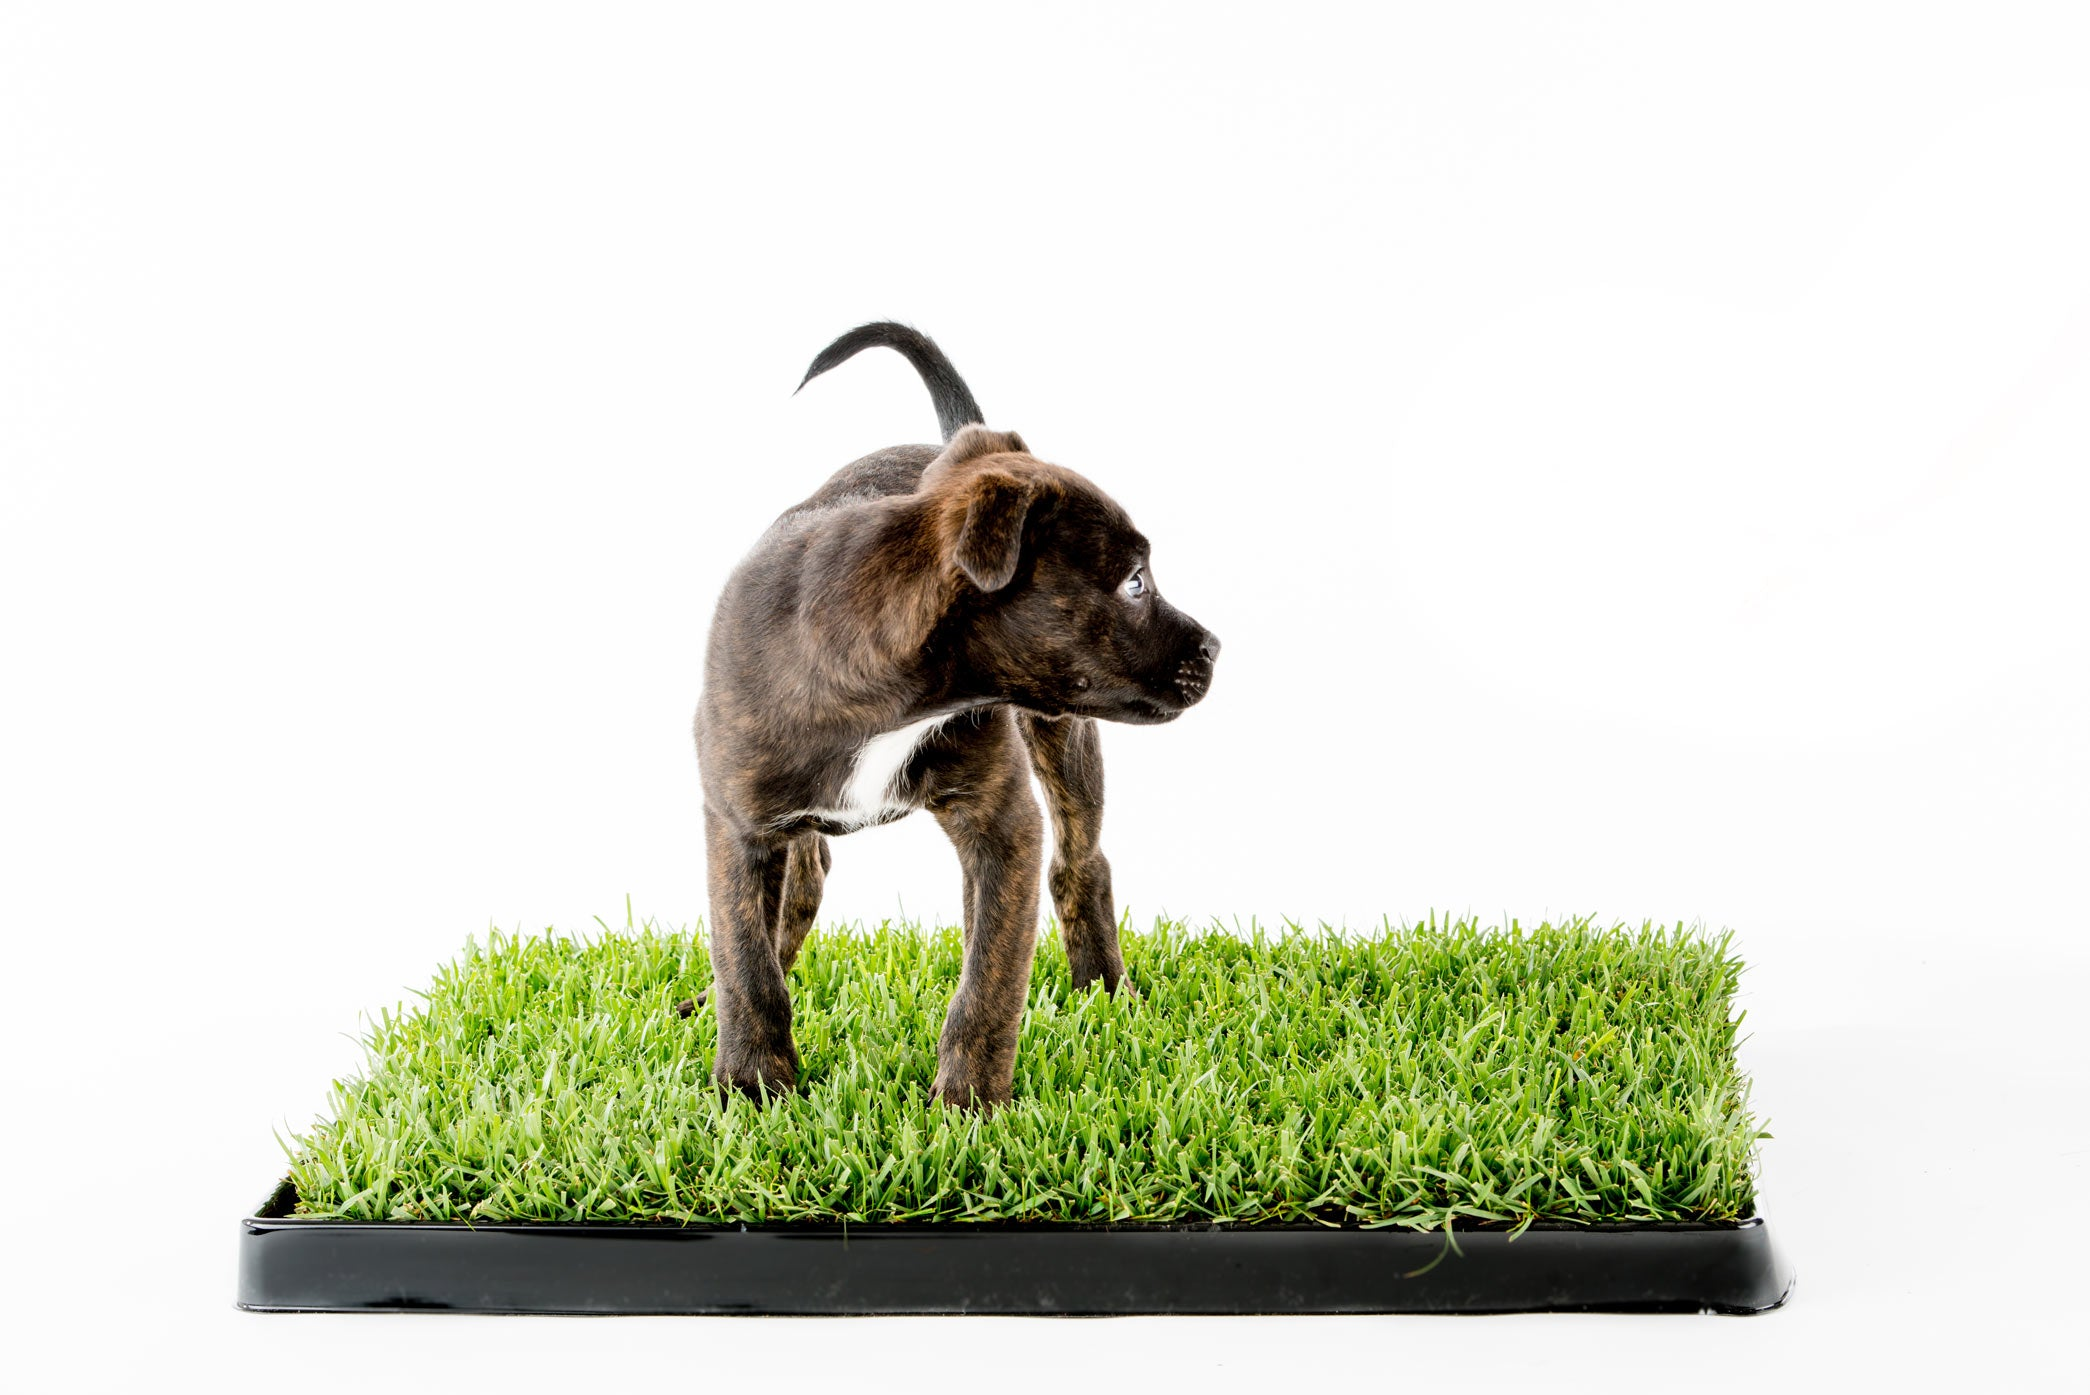 Dog standing on Real grass